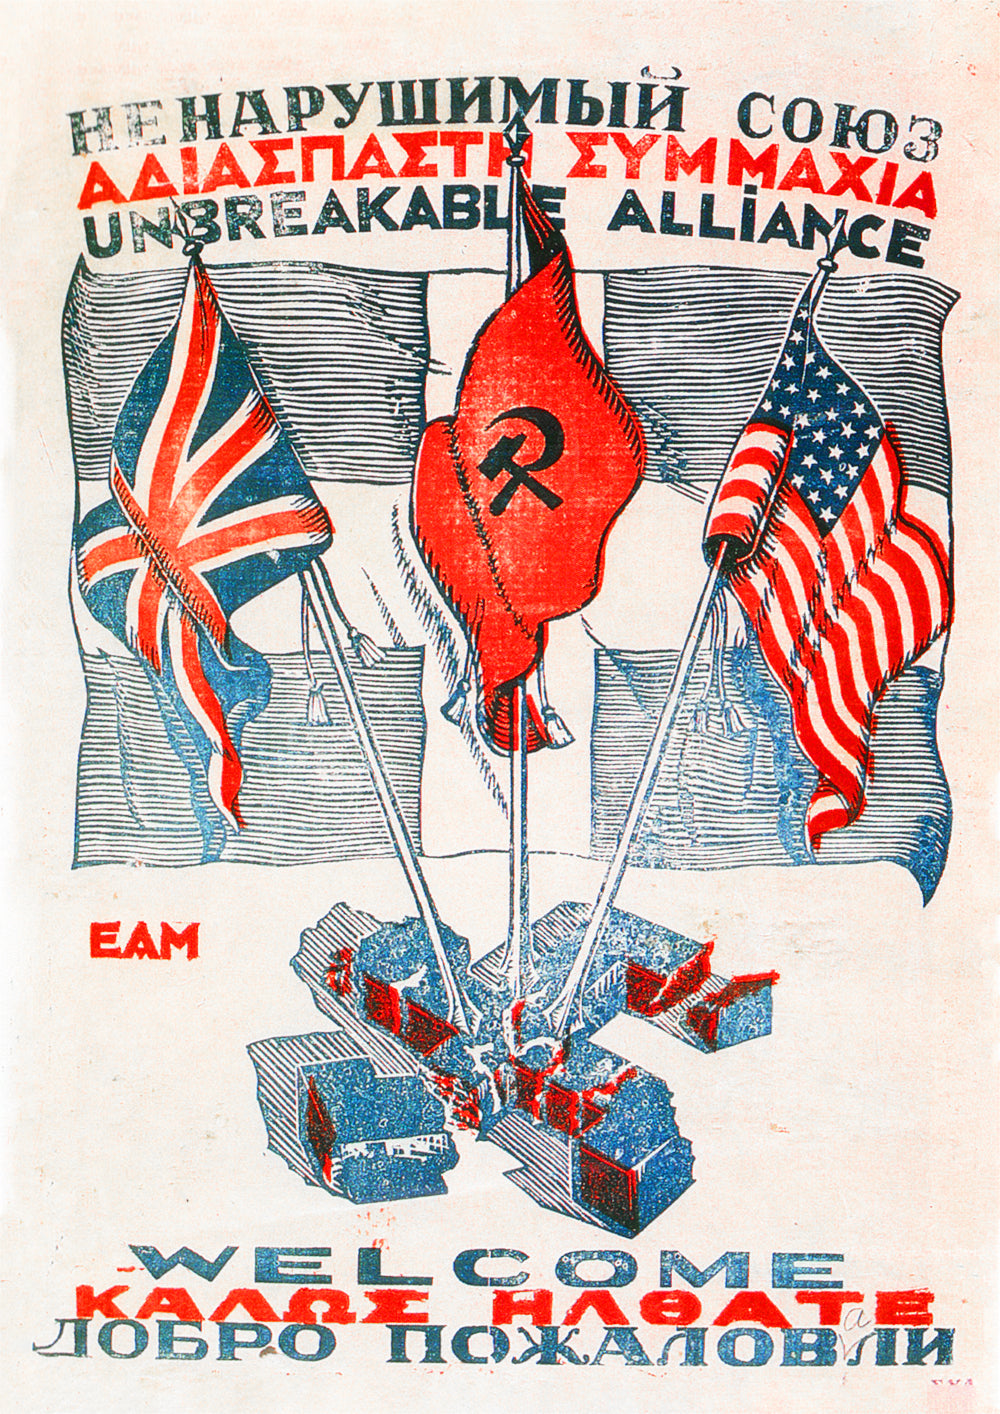 Unbreakable alliance – Greek World War Two poster